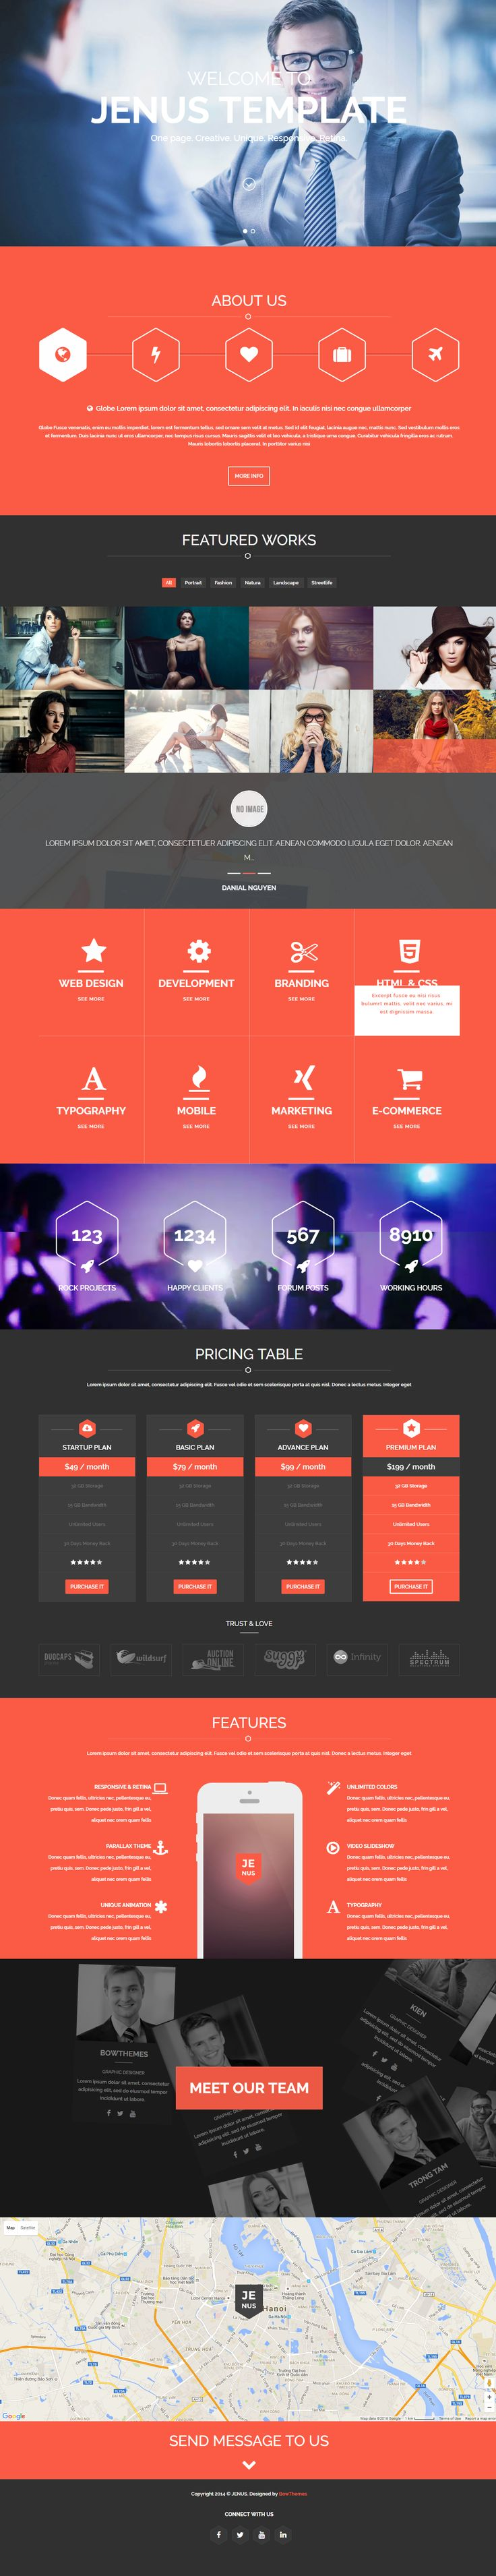 23 best ecommerce templates images on pinterest ecommerce template